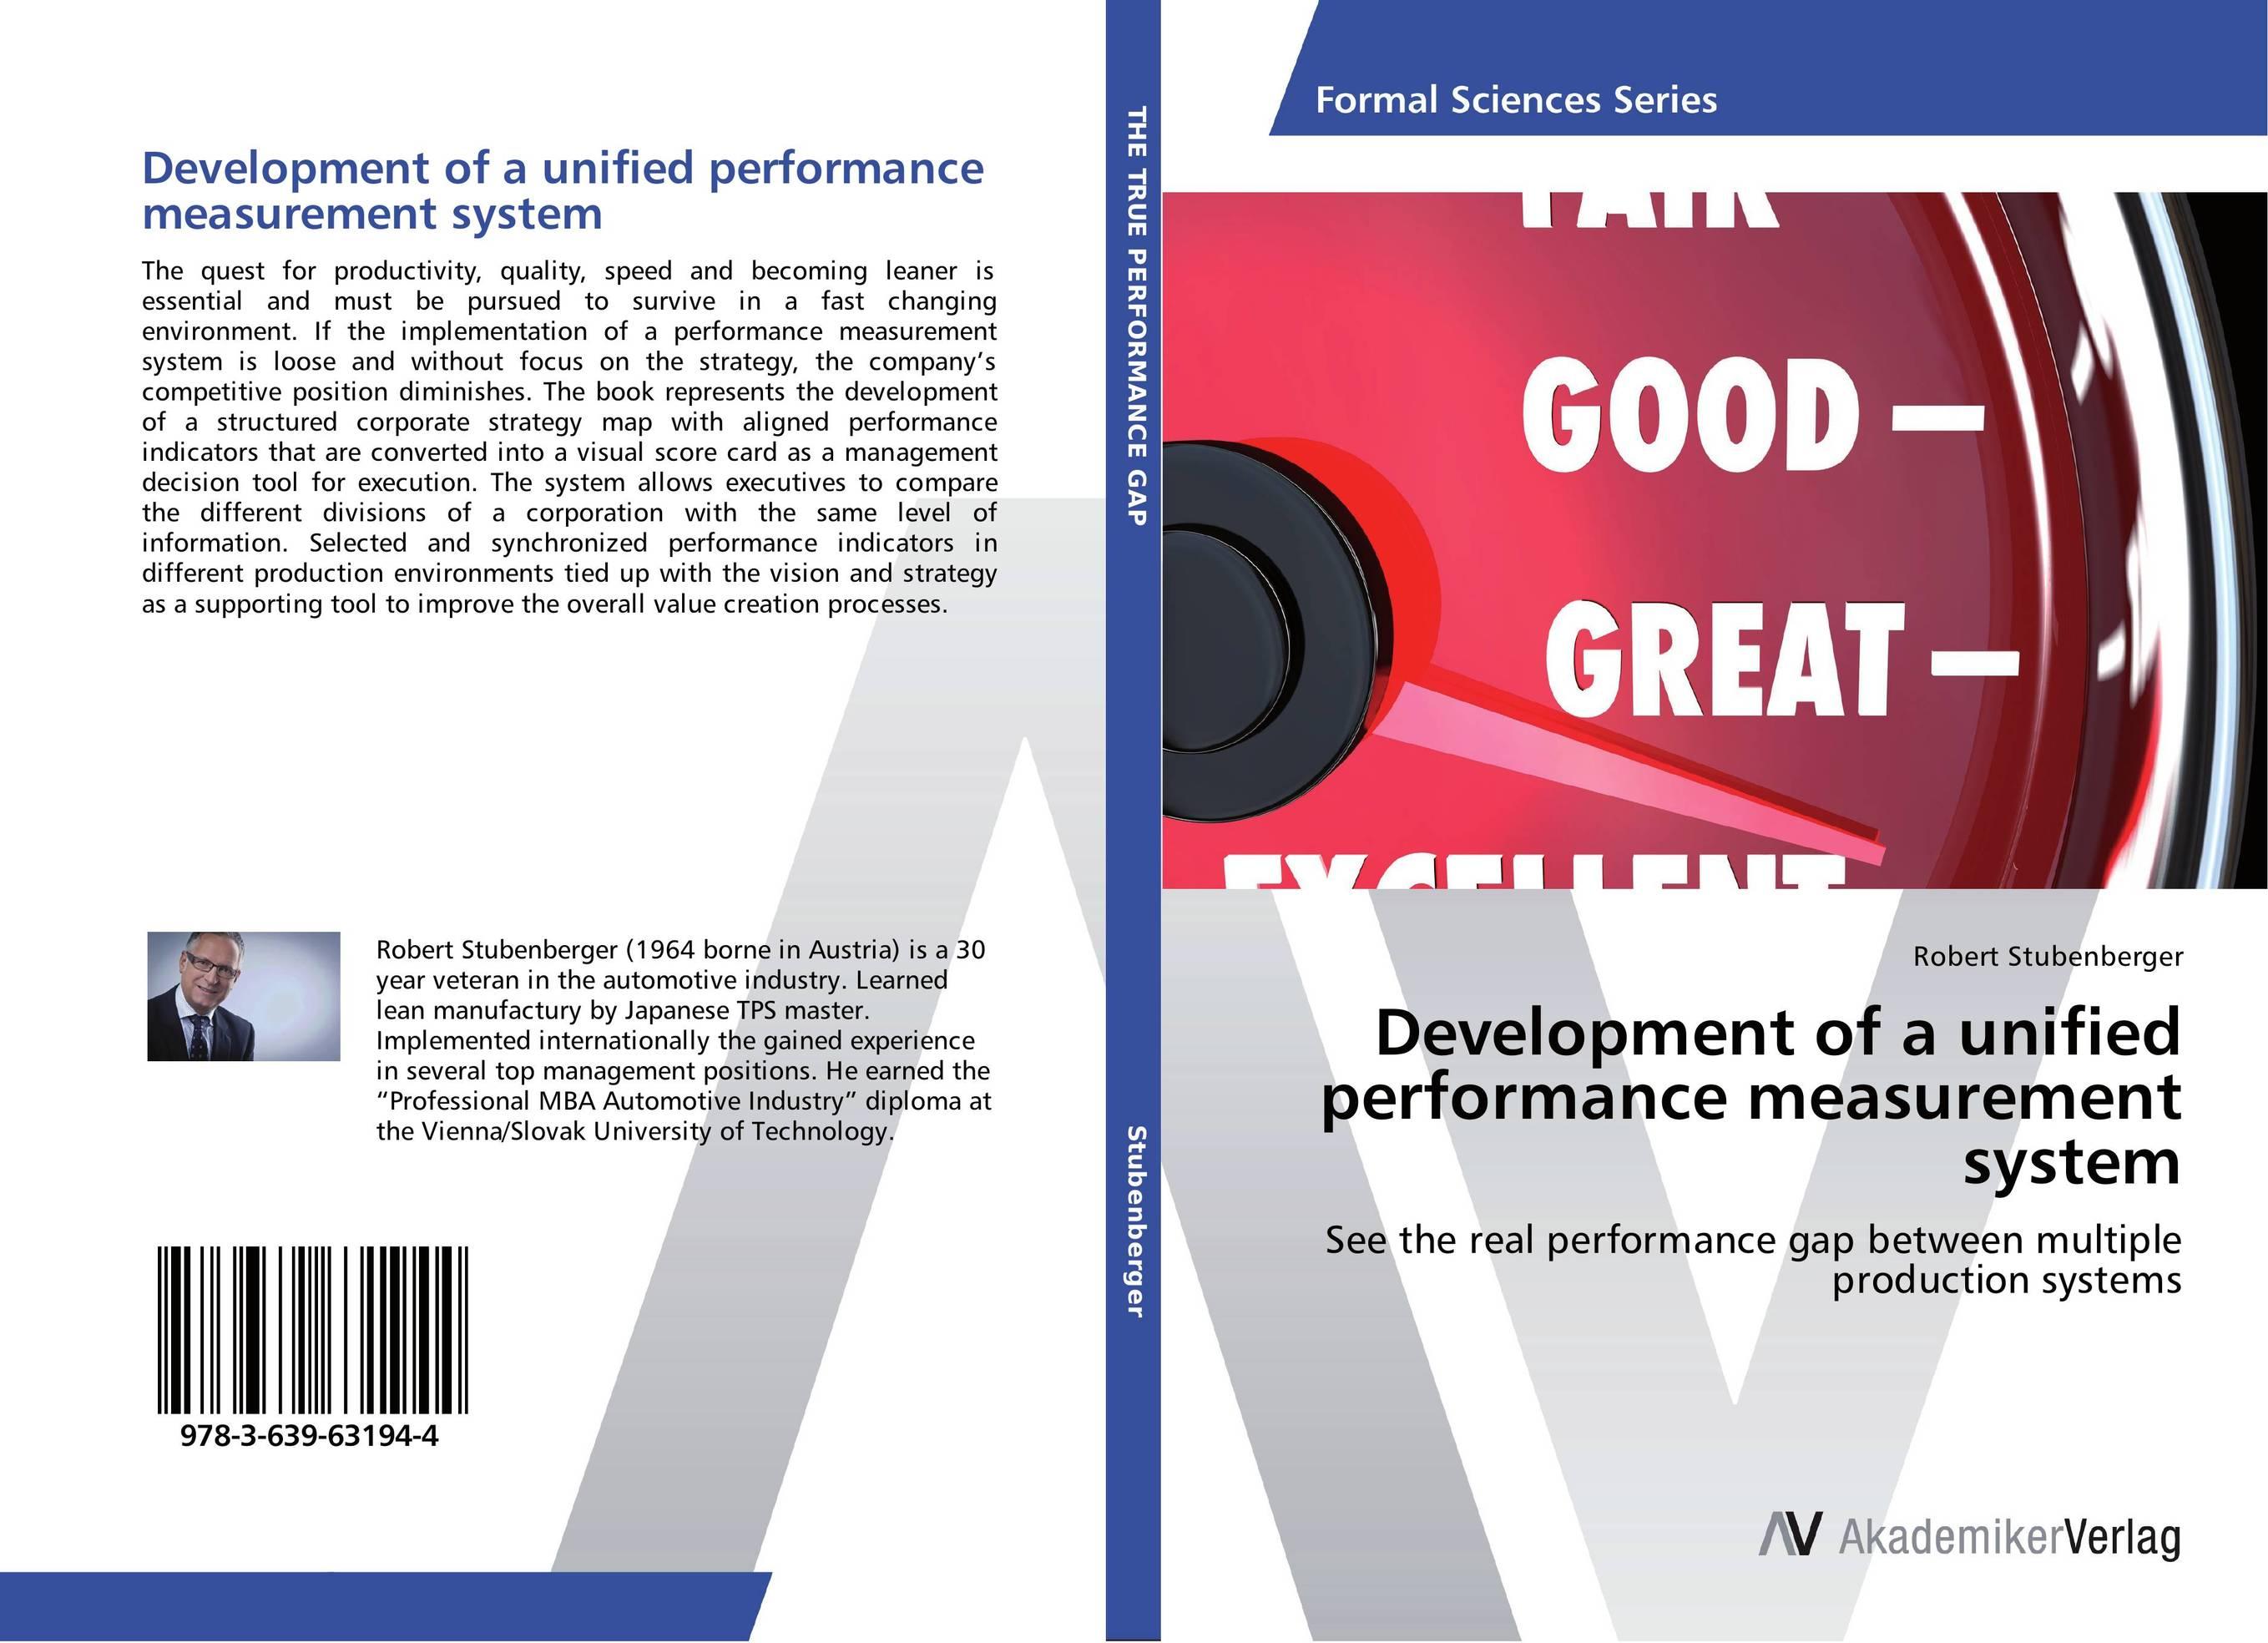 Development of a unified performance measurement system a decision support tool for library book inventory management